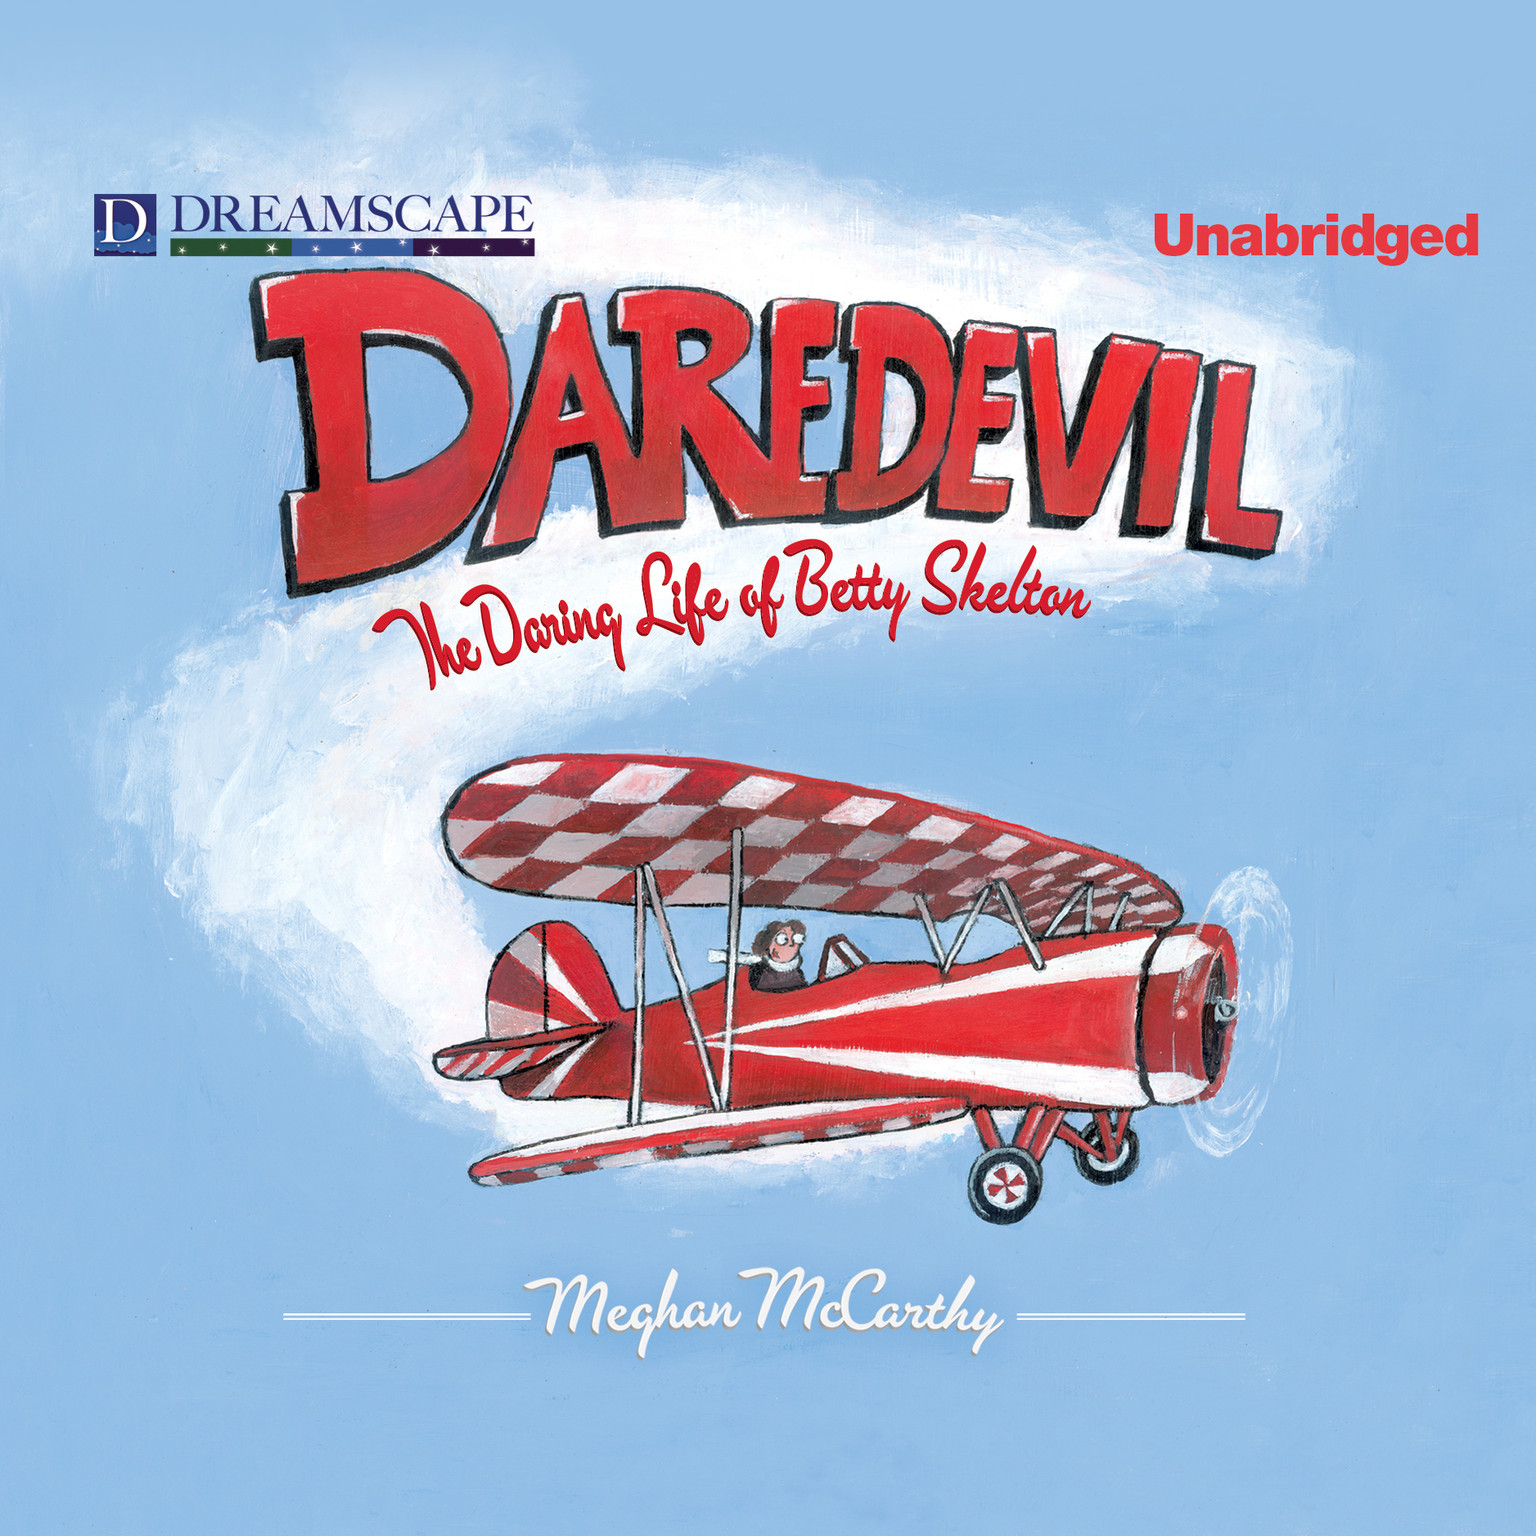 Printable Daredevil: The Daring Life of Betty Skelton Audiobook Cover Art